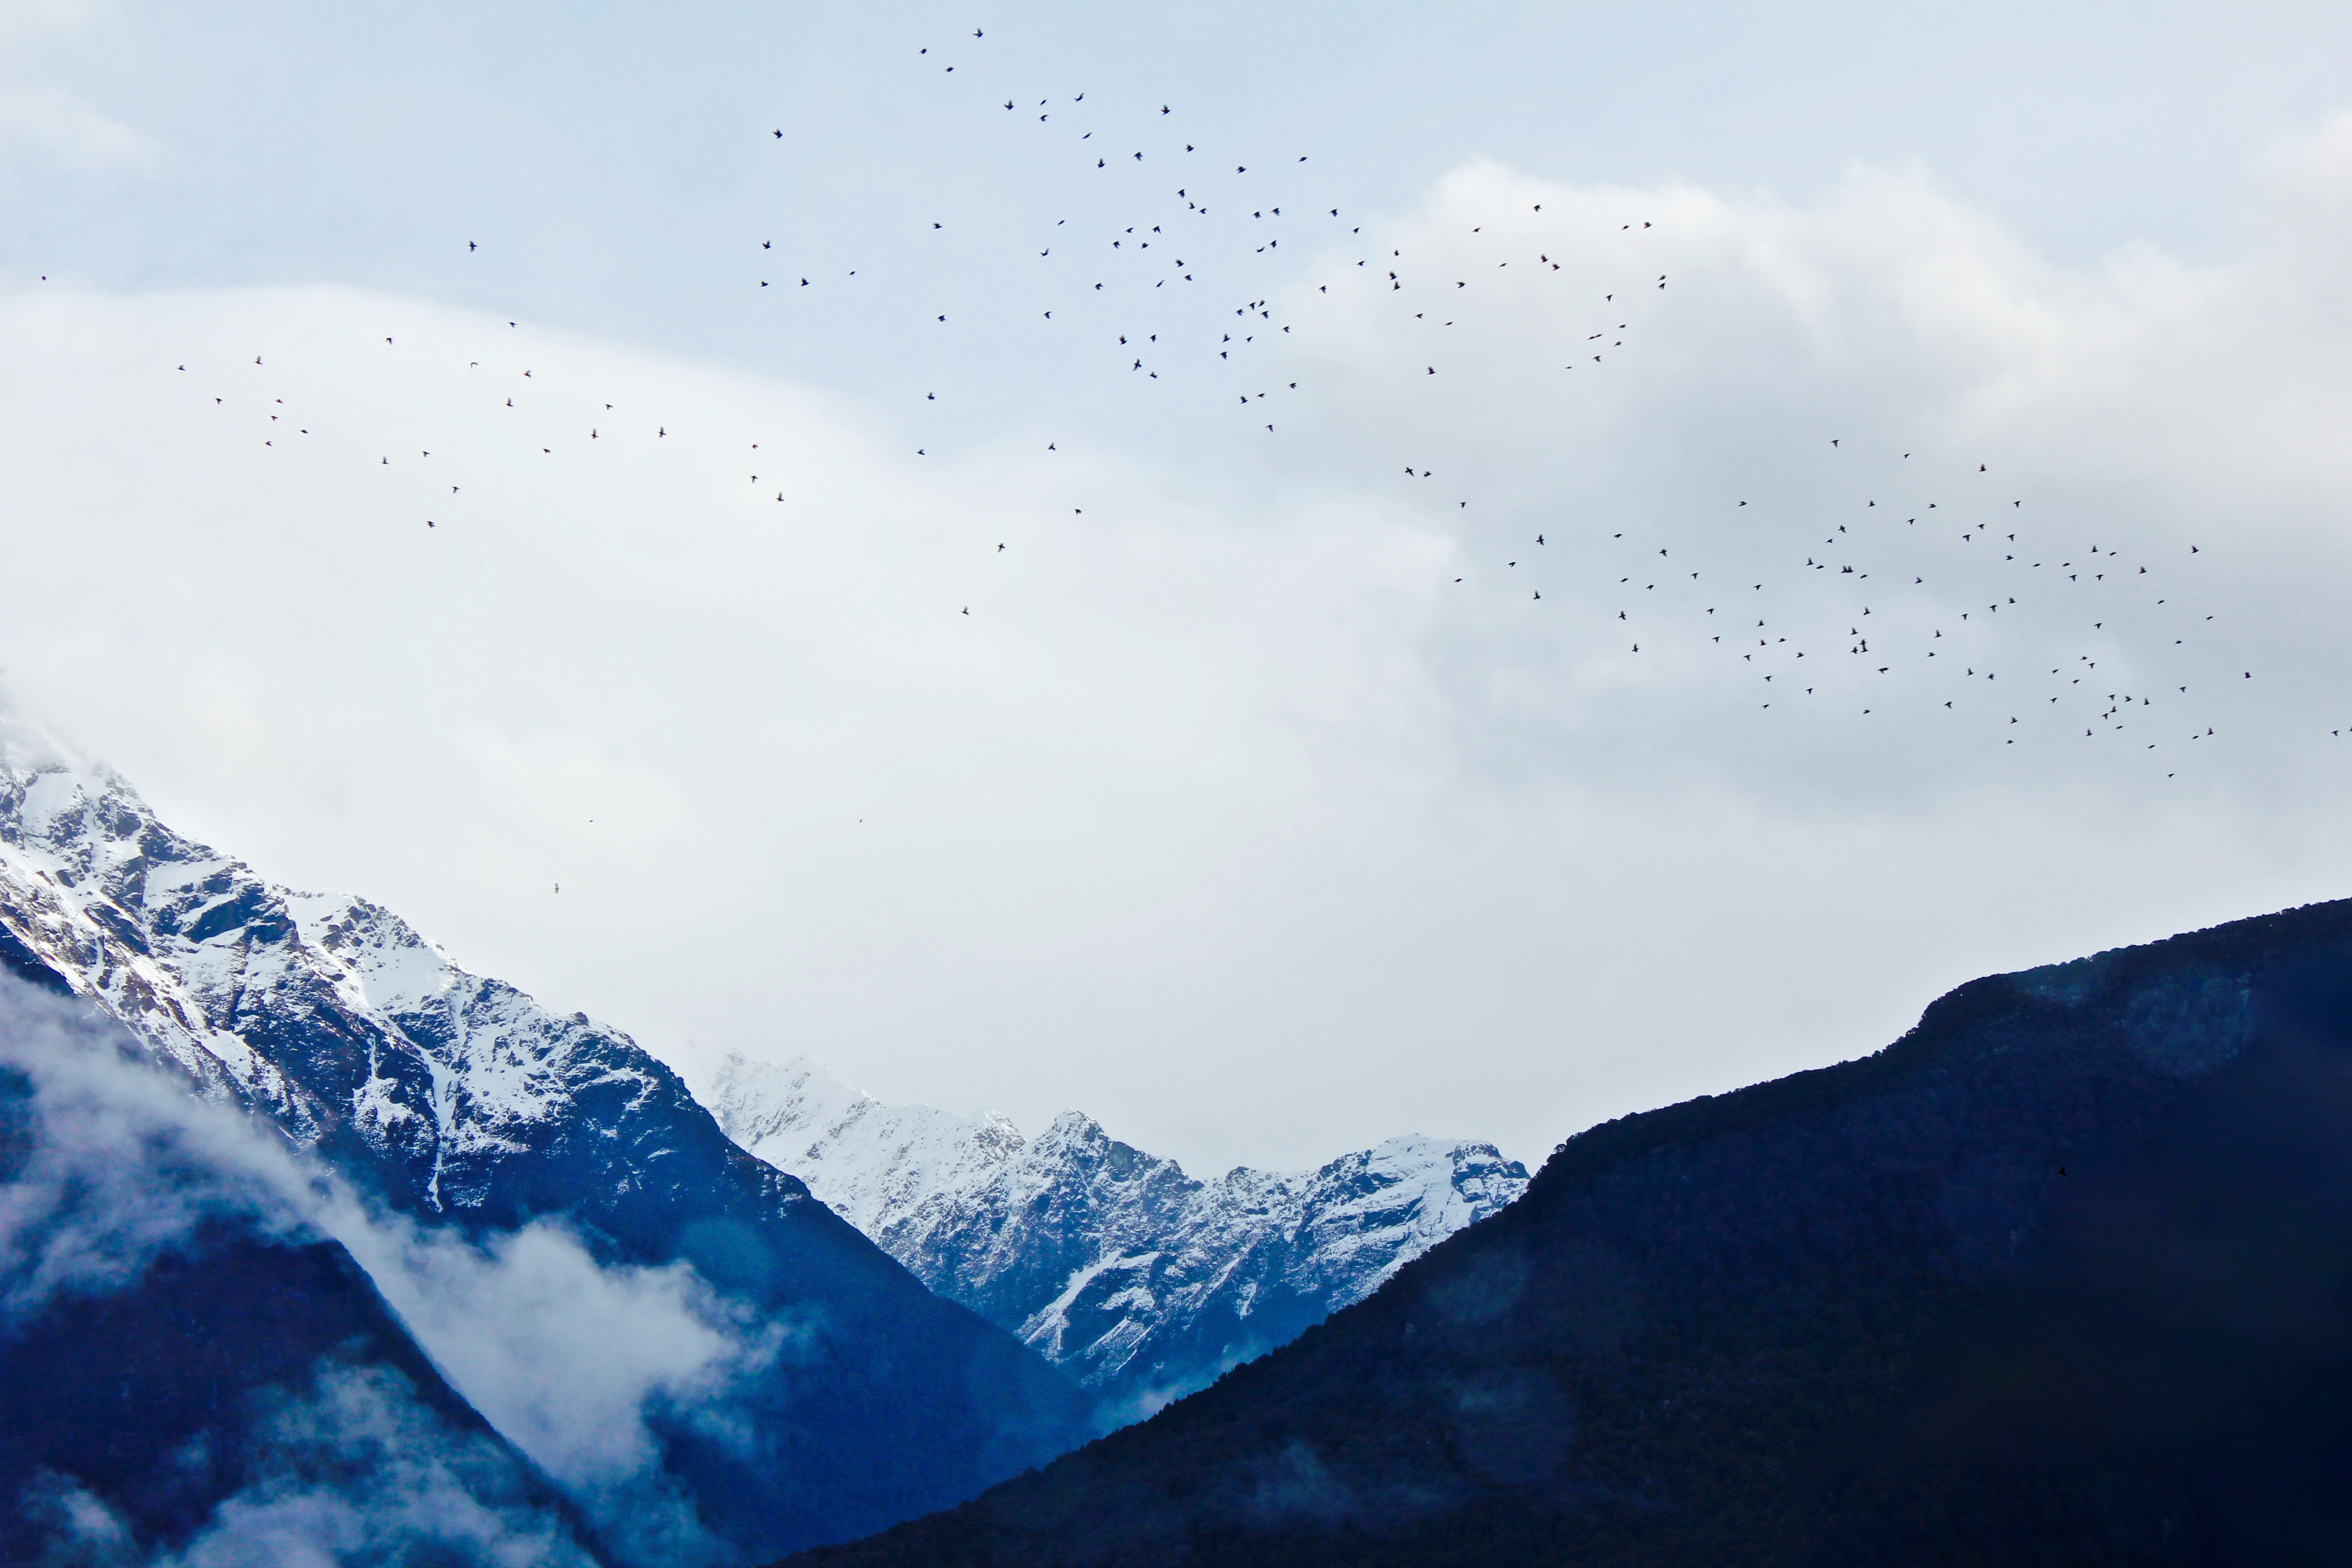 Birds flying above a snowy mountain peak